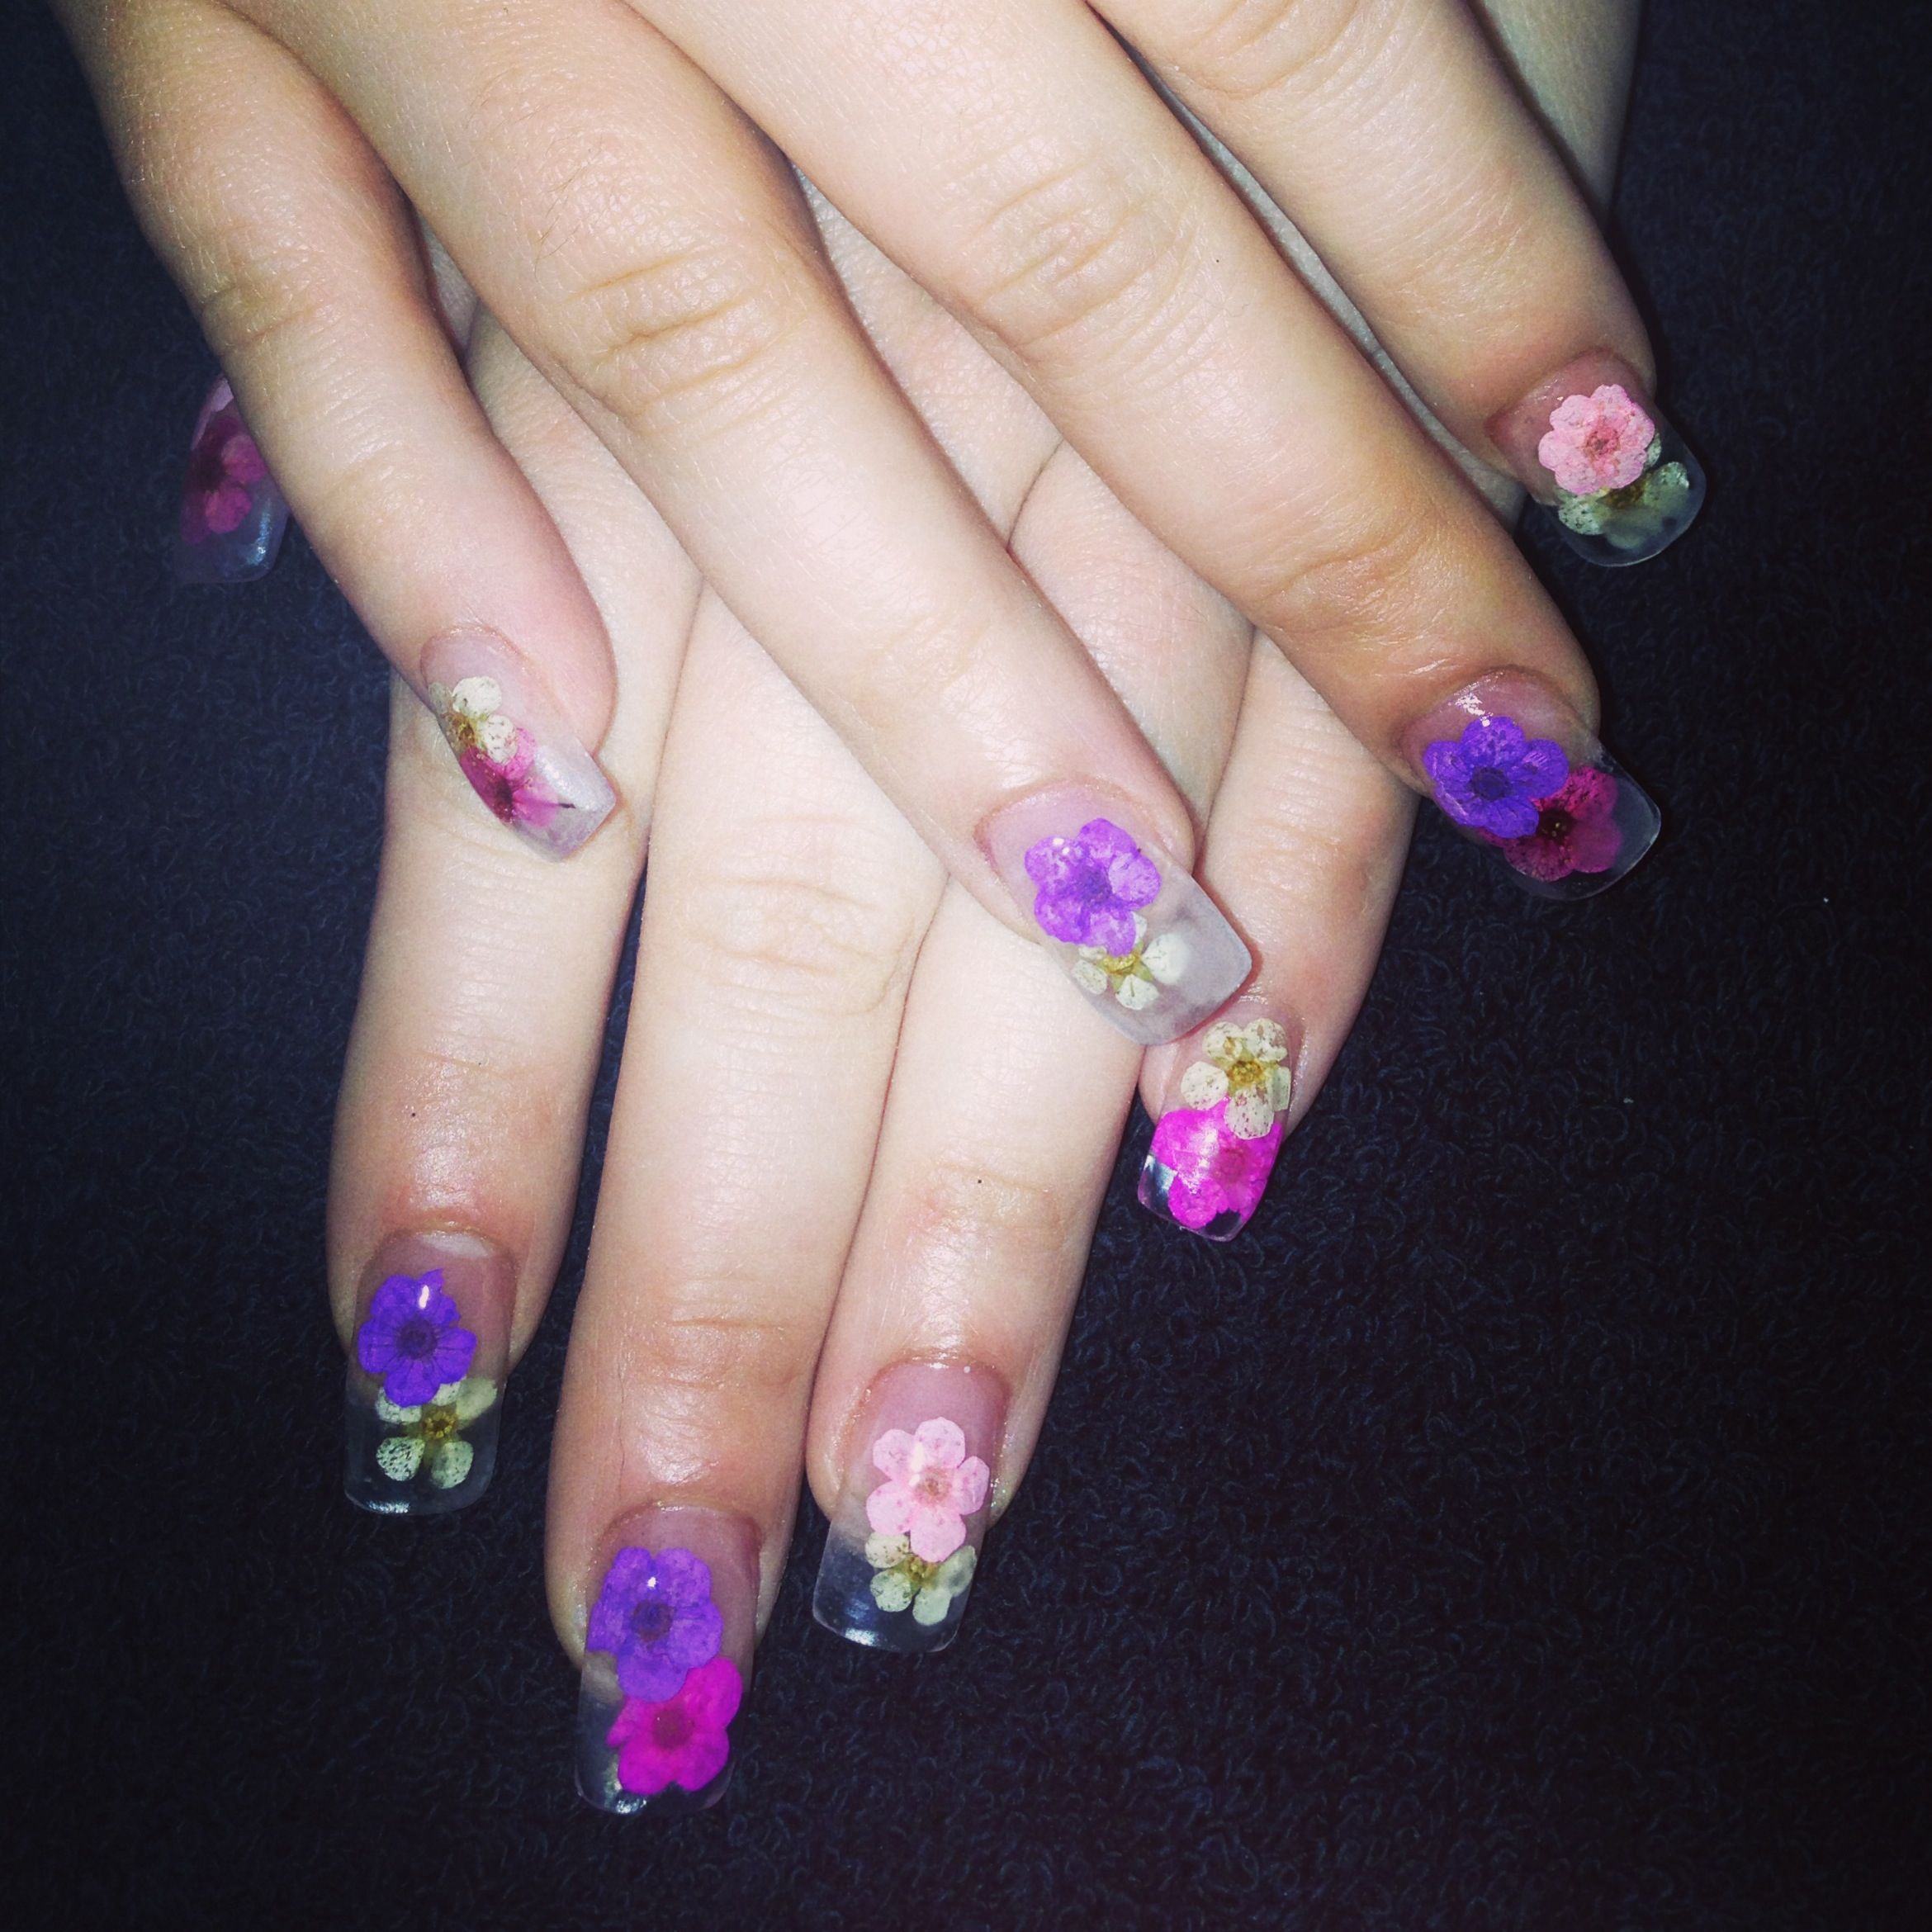 Real Flowers Pink Purple Encapsulated Clear Sculptured Acrylic Nail Extensions X Sculptured Acrylic Nails Bling Nails Nail Candy